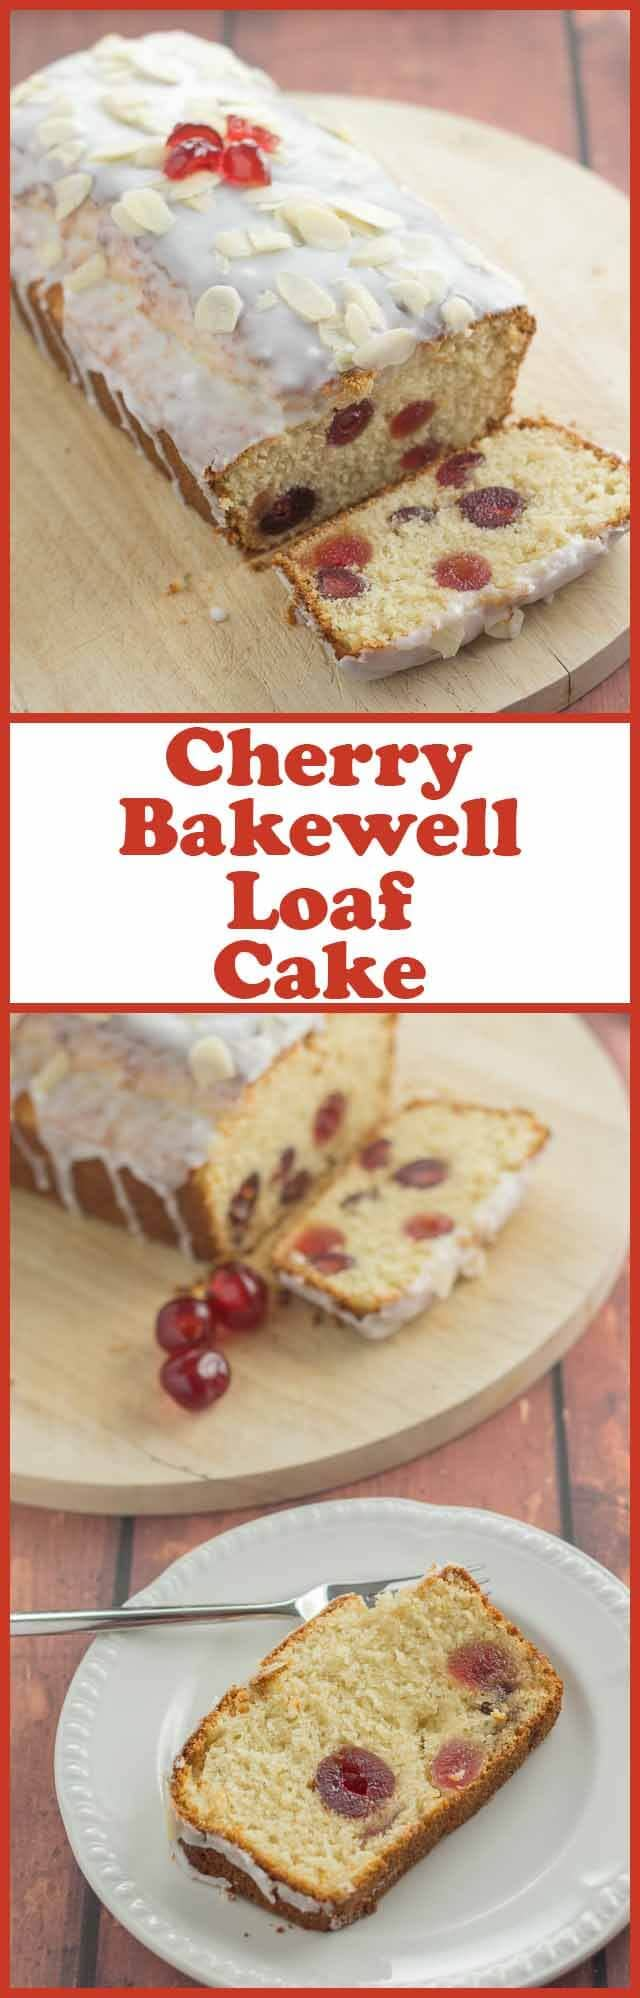 Cherry Bakewell Cake Recipe